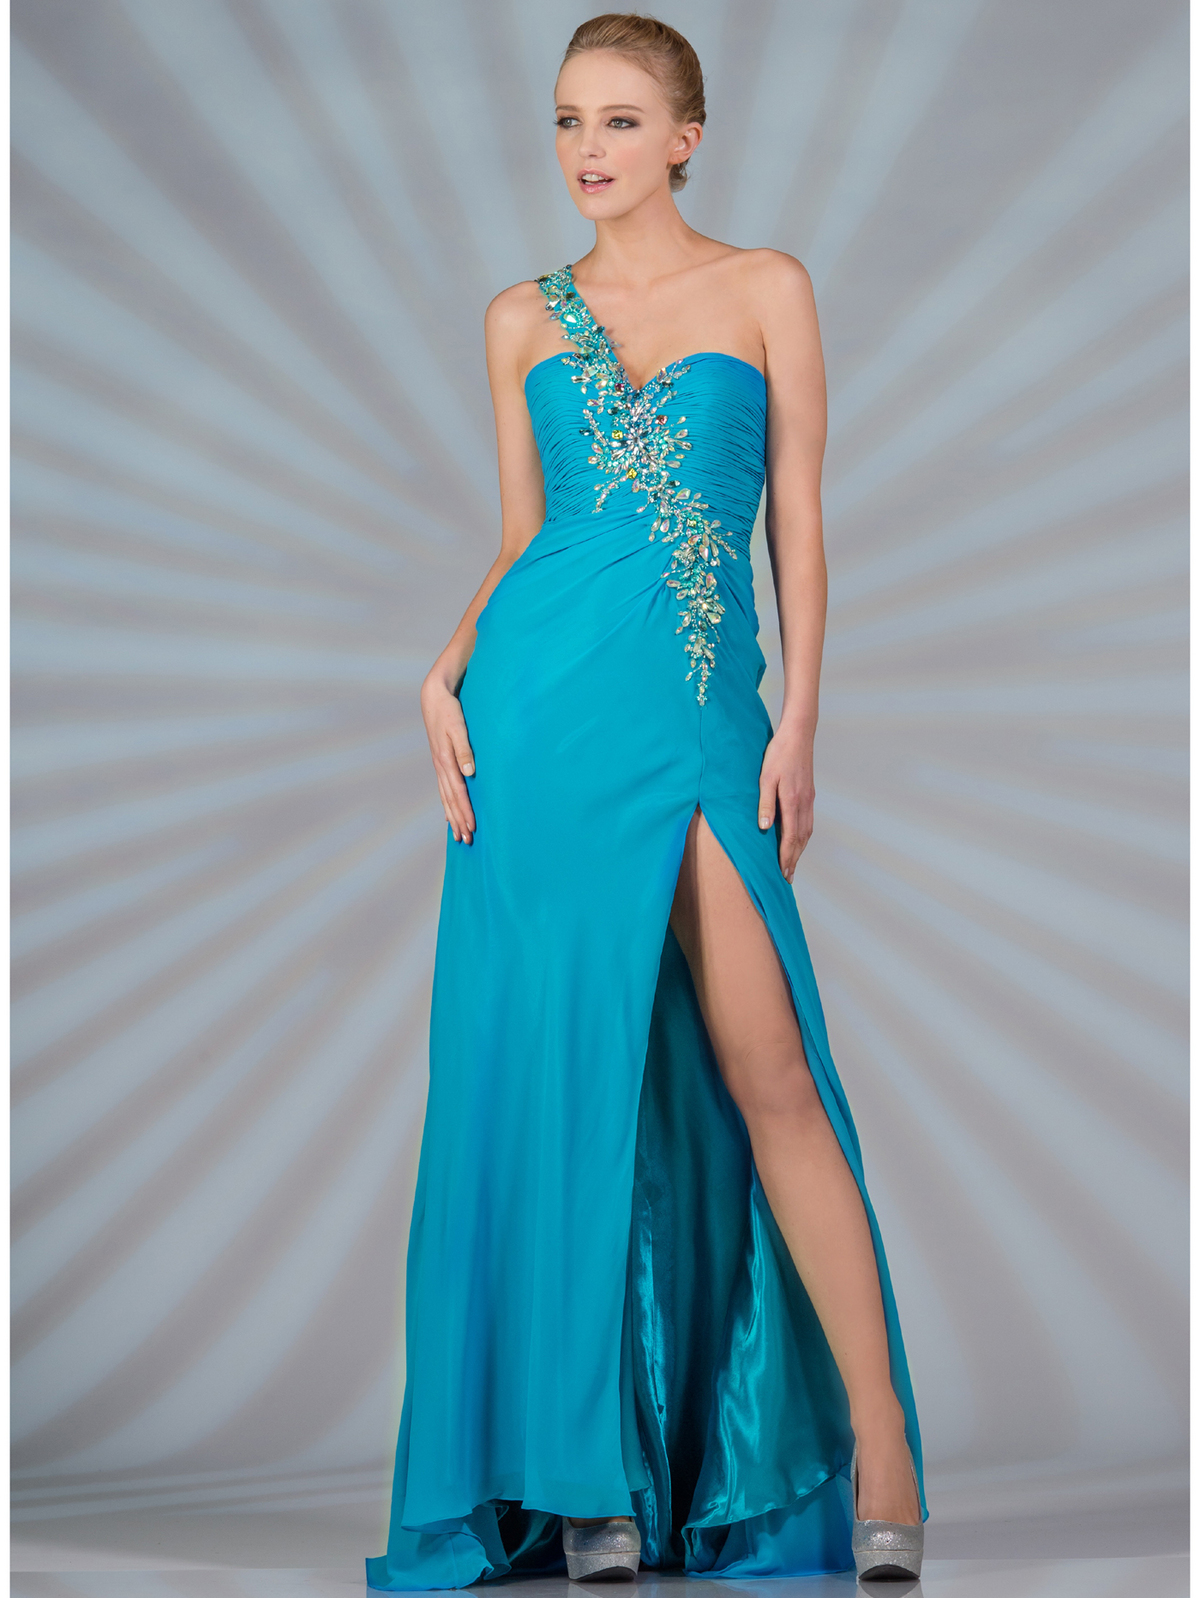 Jeweled and Beaded One Shoulder Prom Dress | Sung Boutique L.A.